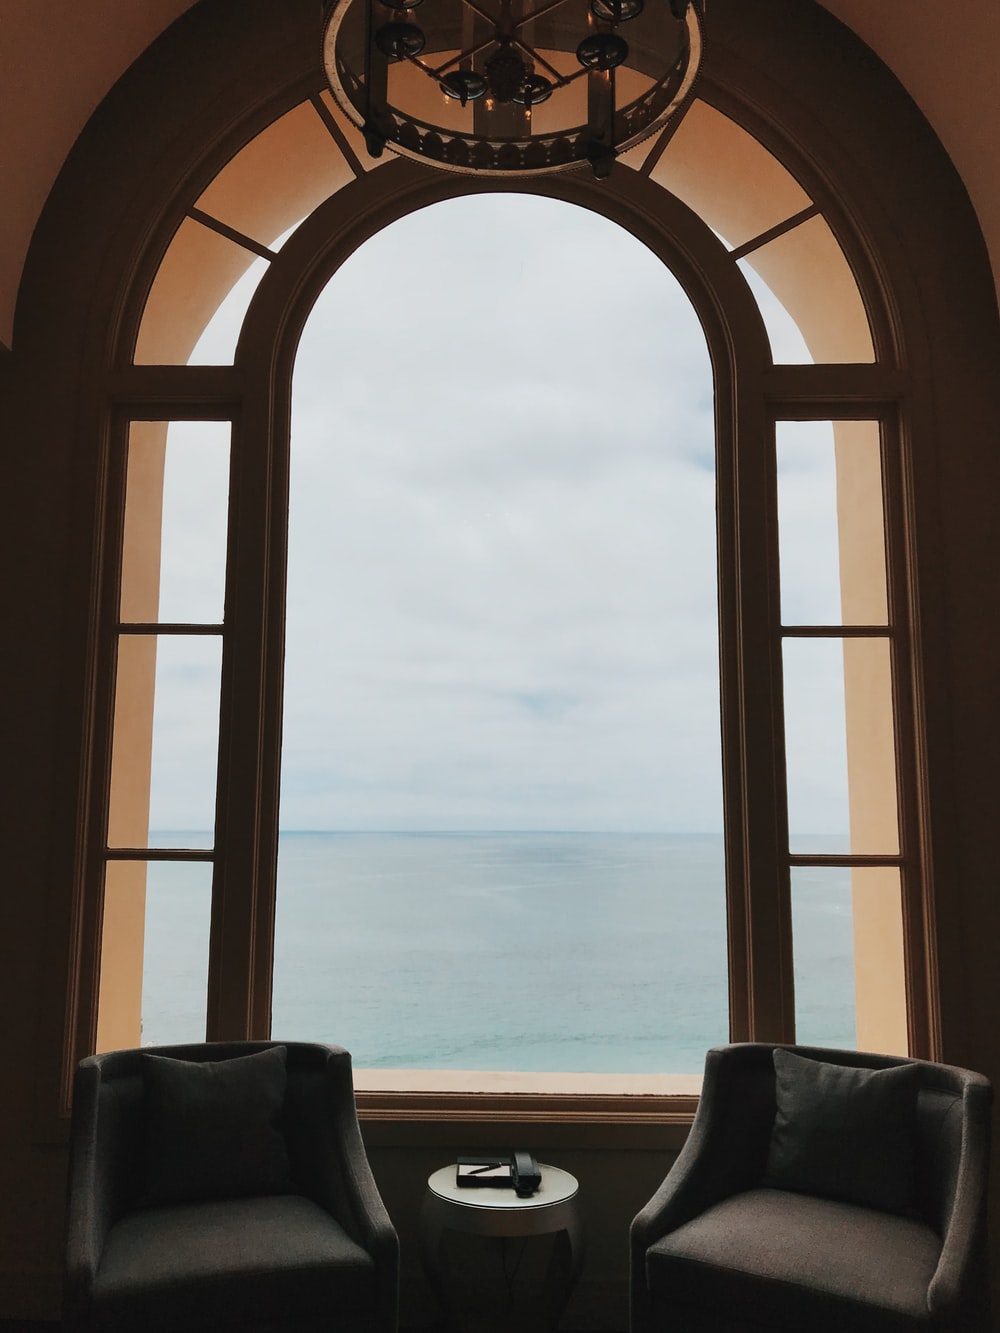 brown wooden framed window and grey padded chairs